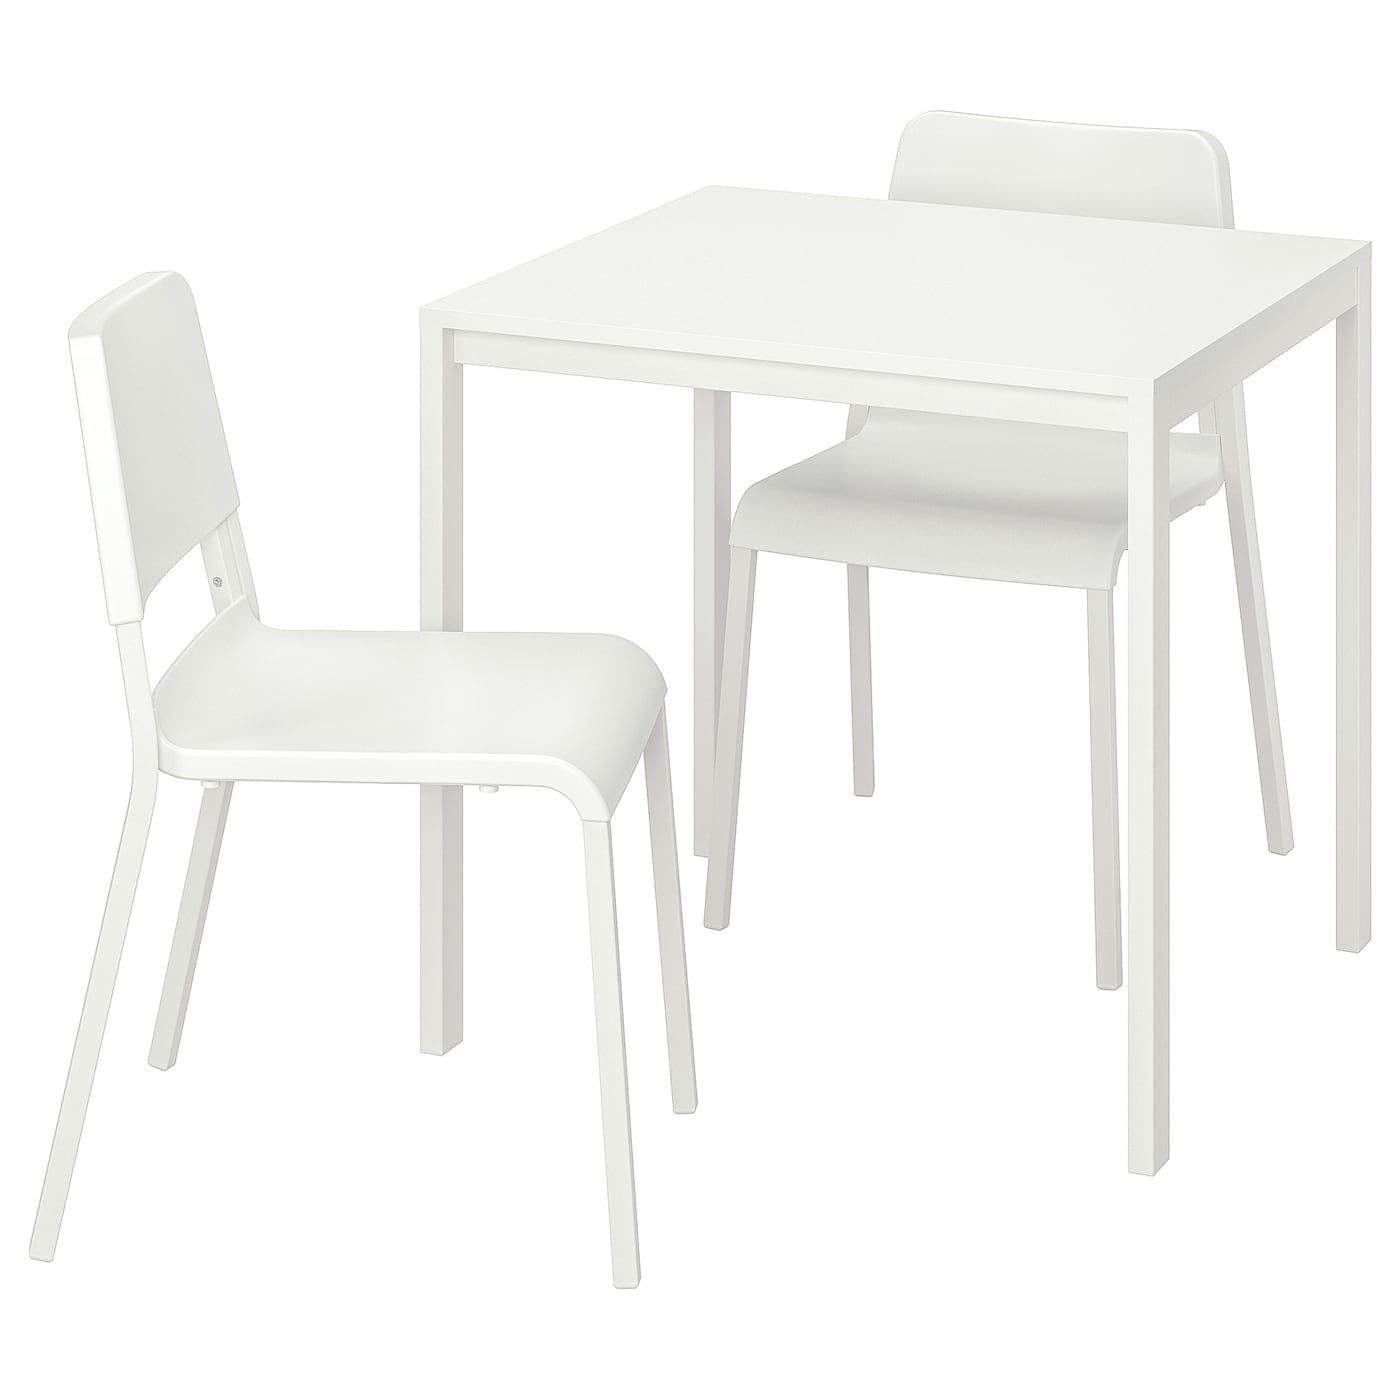 MELLTORP TEODORES Table and 2 chairs white, white 29 1